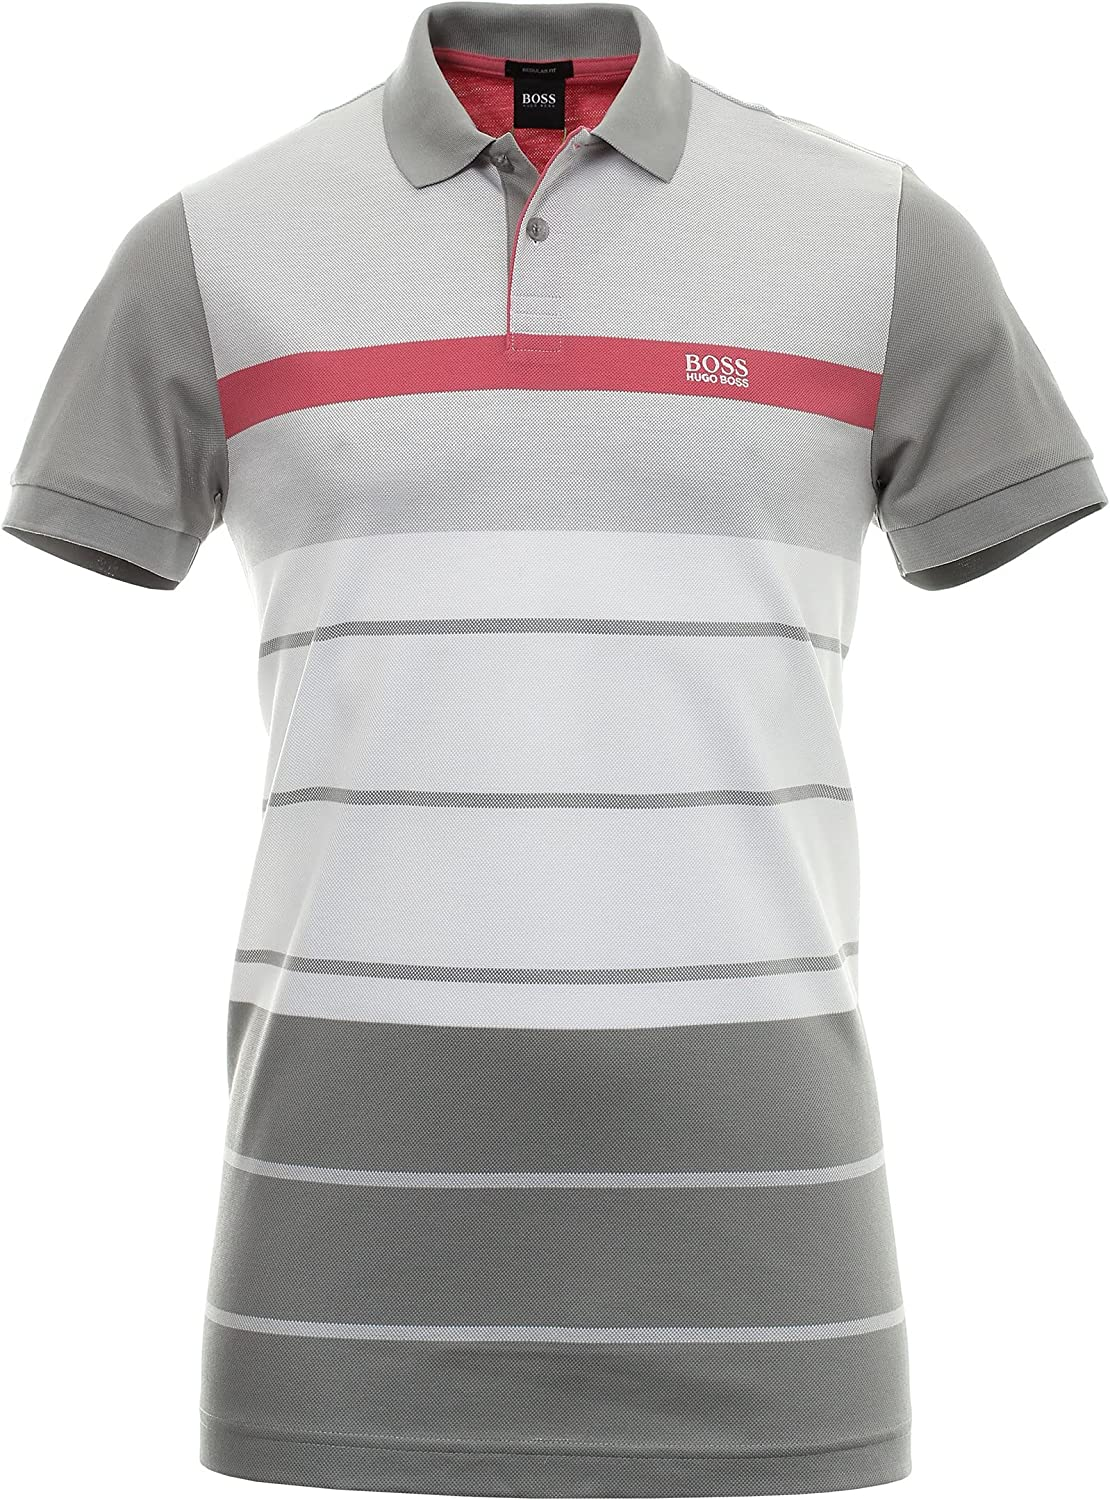 Hugo Boss Men's Paddy Popular shop is the lowest price challenge 5 Gray Short Polo Sleeve Ranking TOP1 T-Shirt Striped